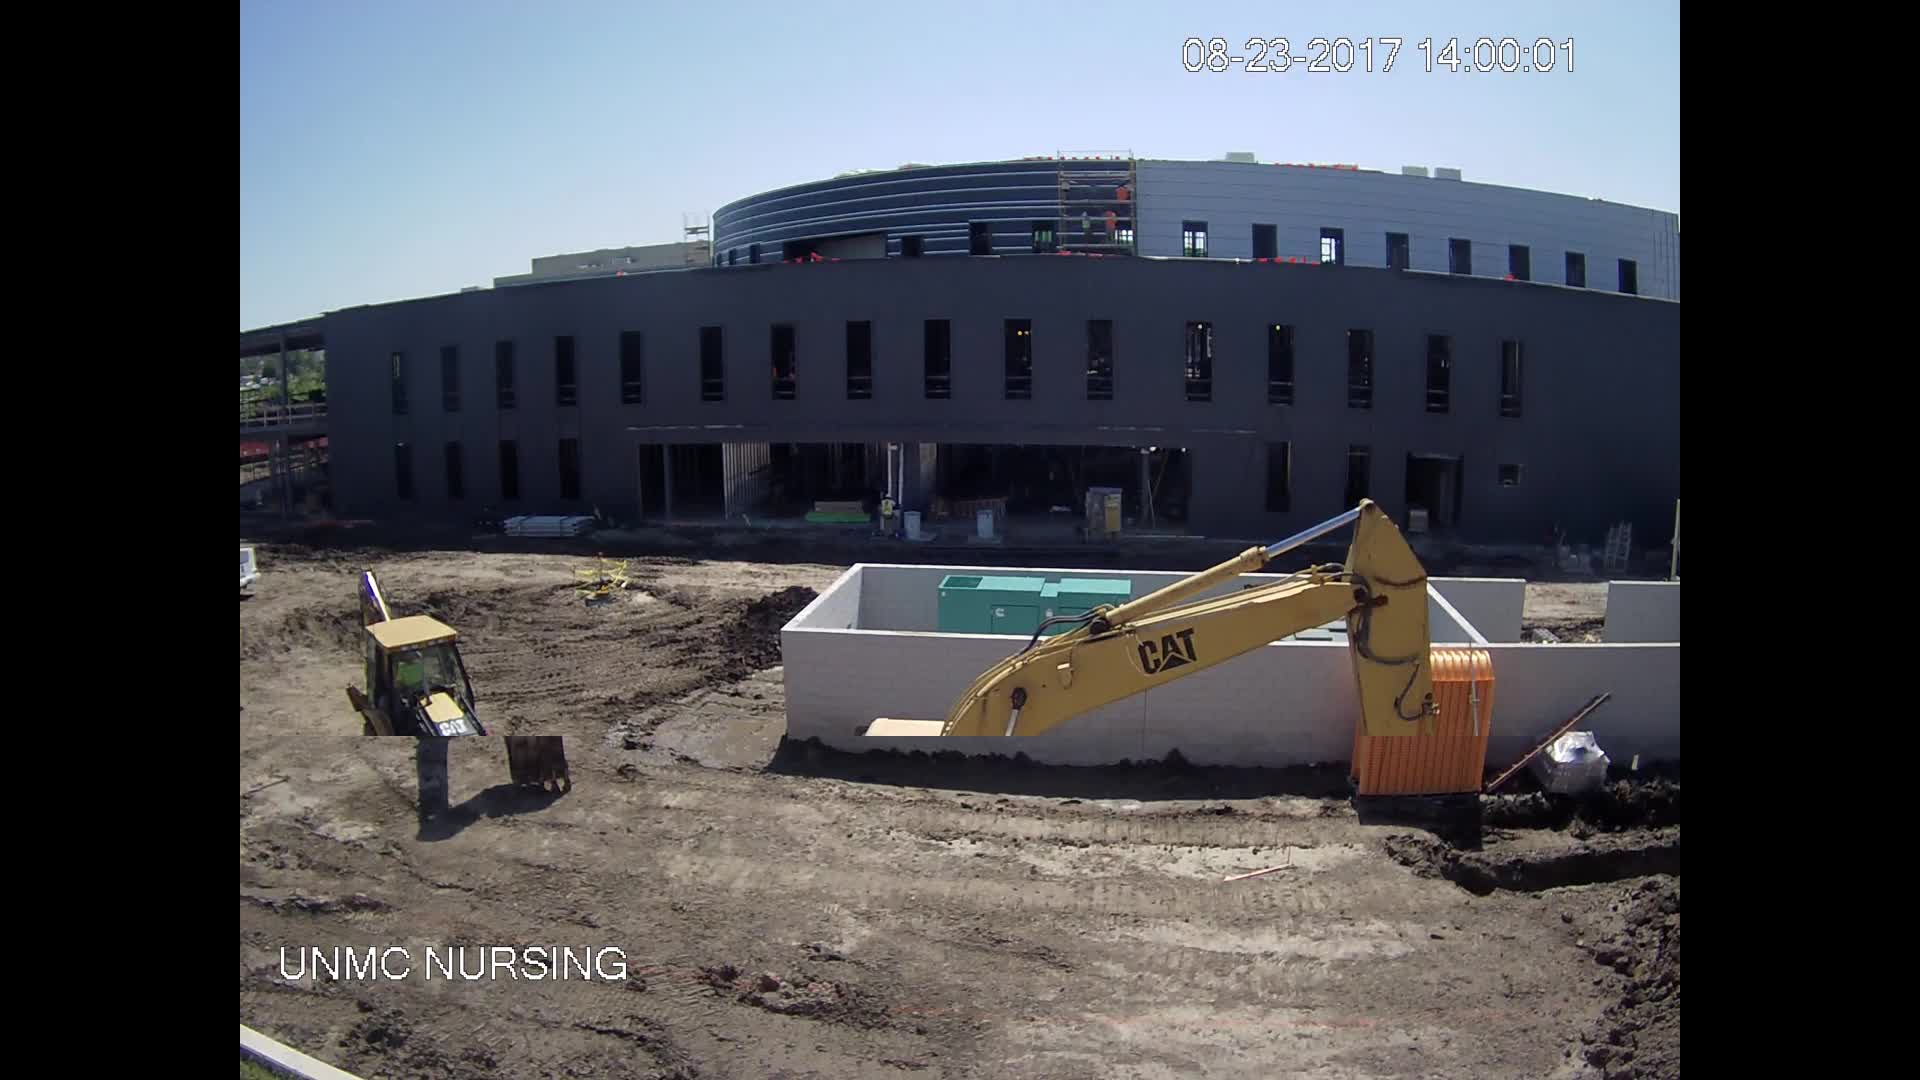 UNMC Nursing Construction Site: Constructing the Rain Water Retention Basin